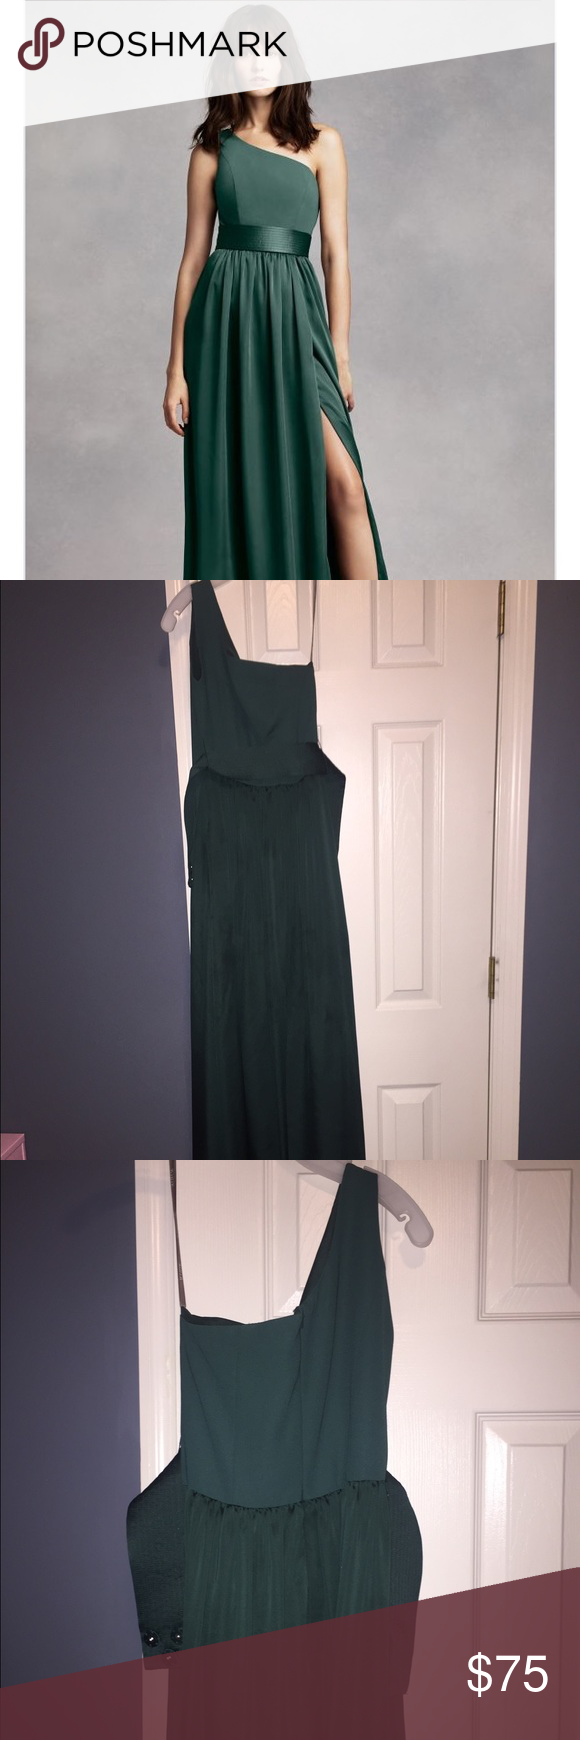 One Shoulder Alterations